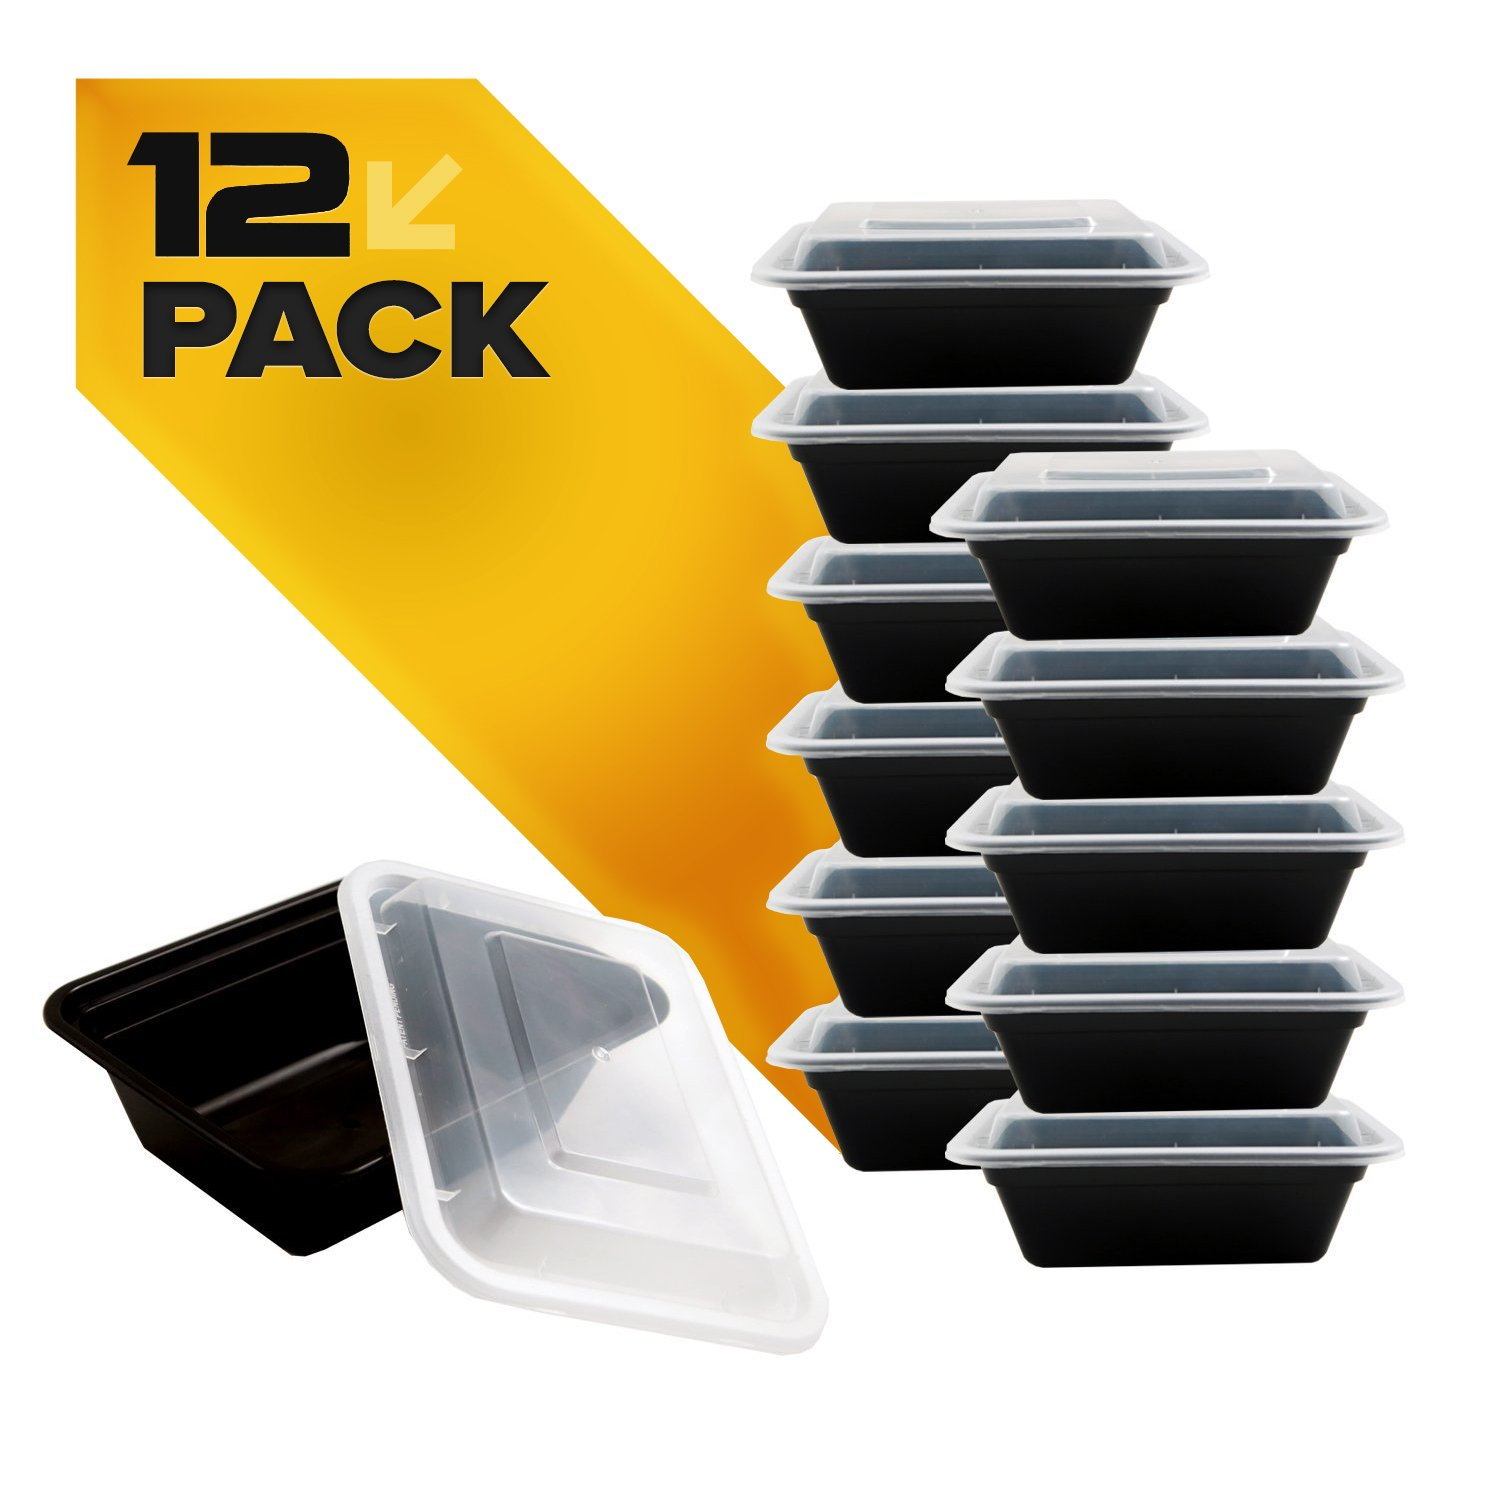 Fitpacker MINI Meal Prep Containers - BPA-free - Reusable, Washable, Microwavable Healthy Food Containers with Lids (12 Pack, 12 Ounce) (12)